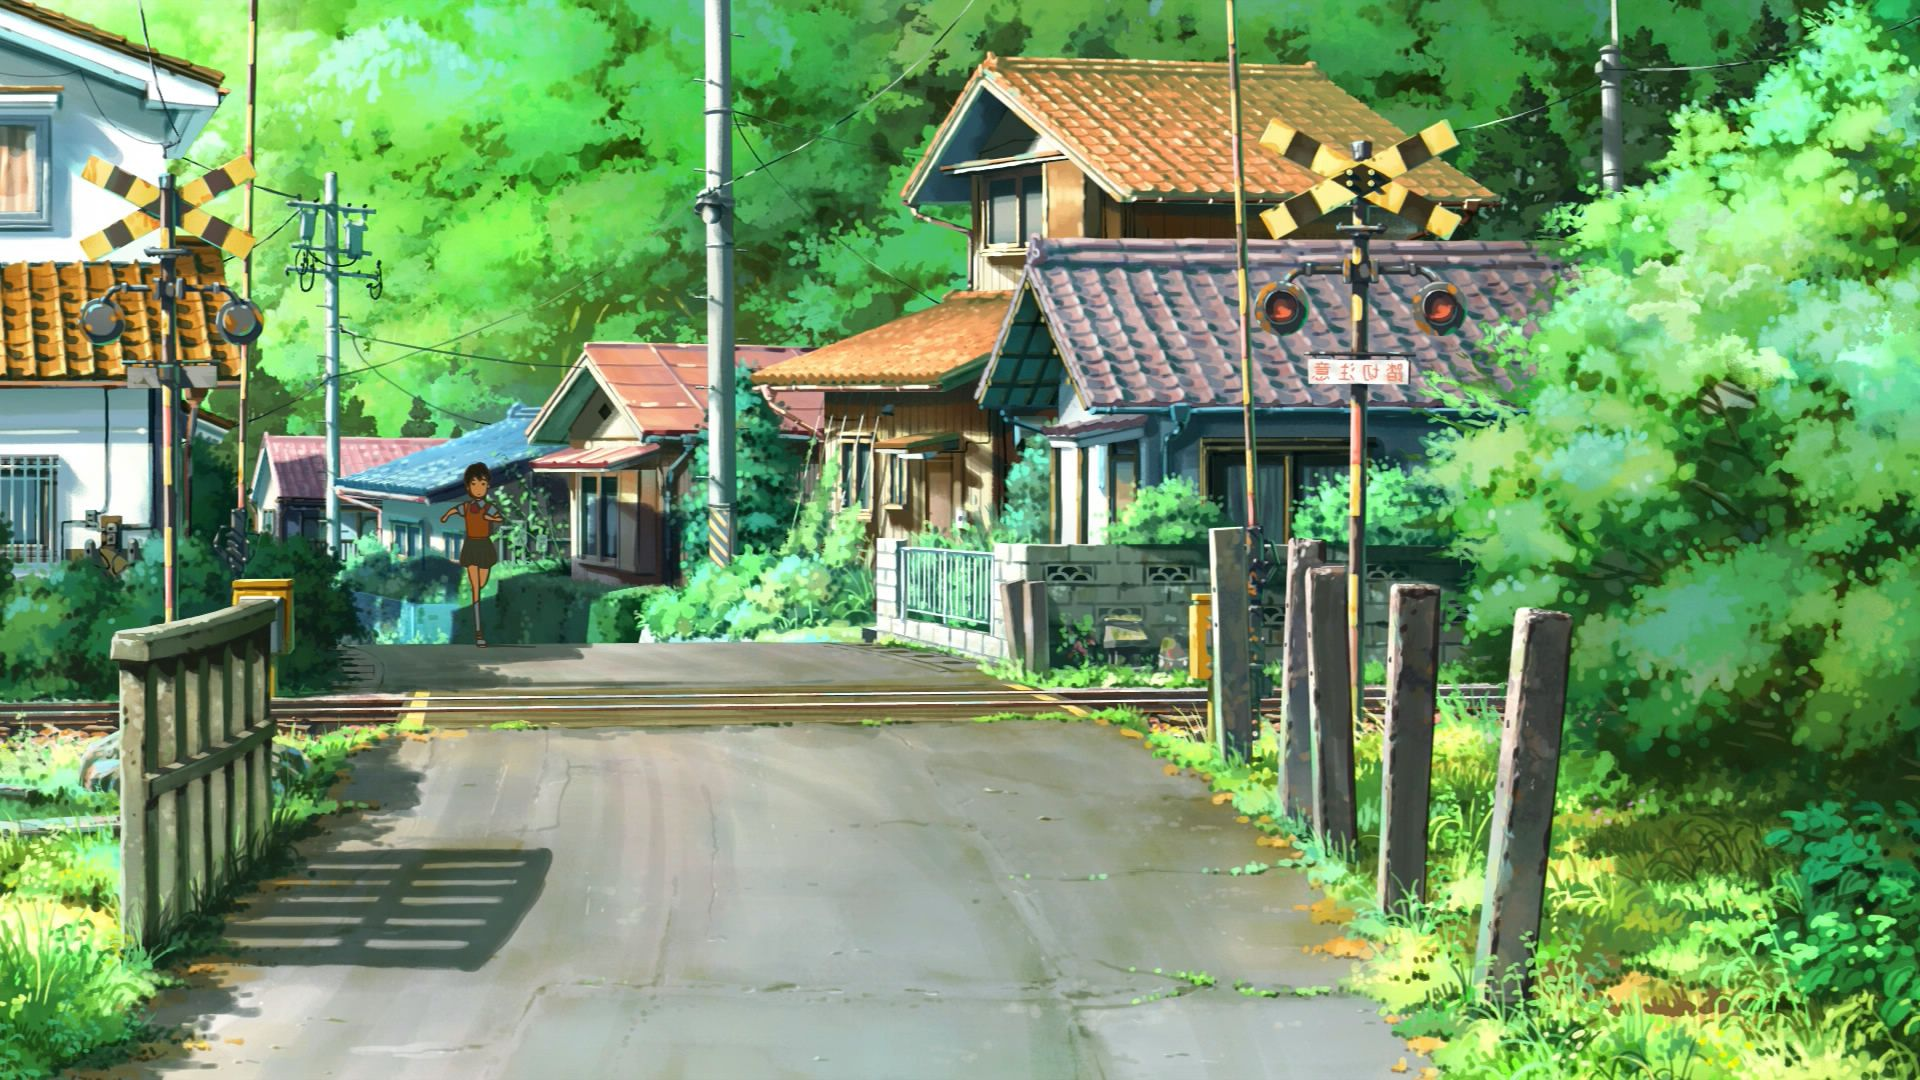 6770903 Anime Scenery Wallpaper